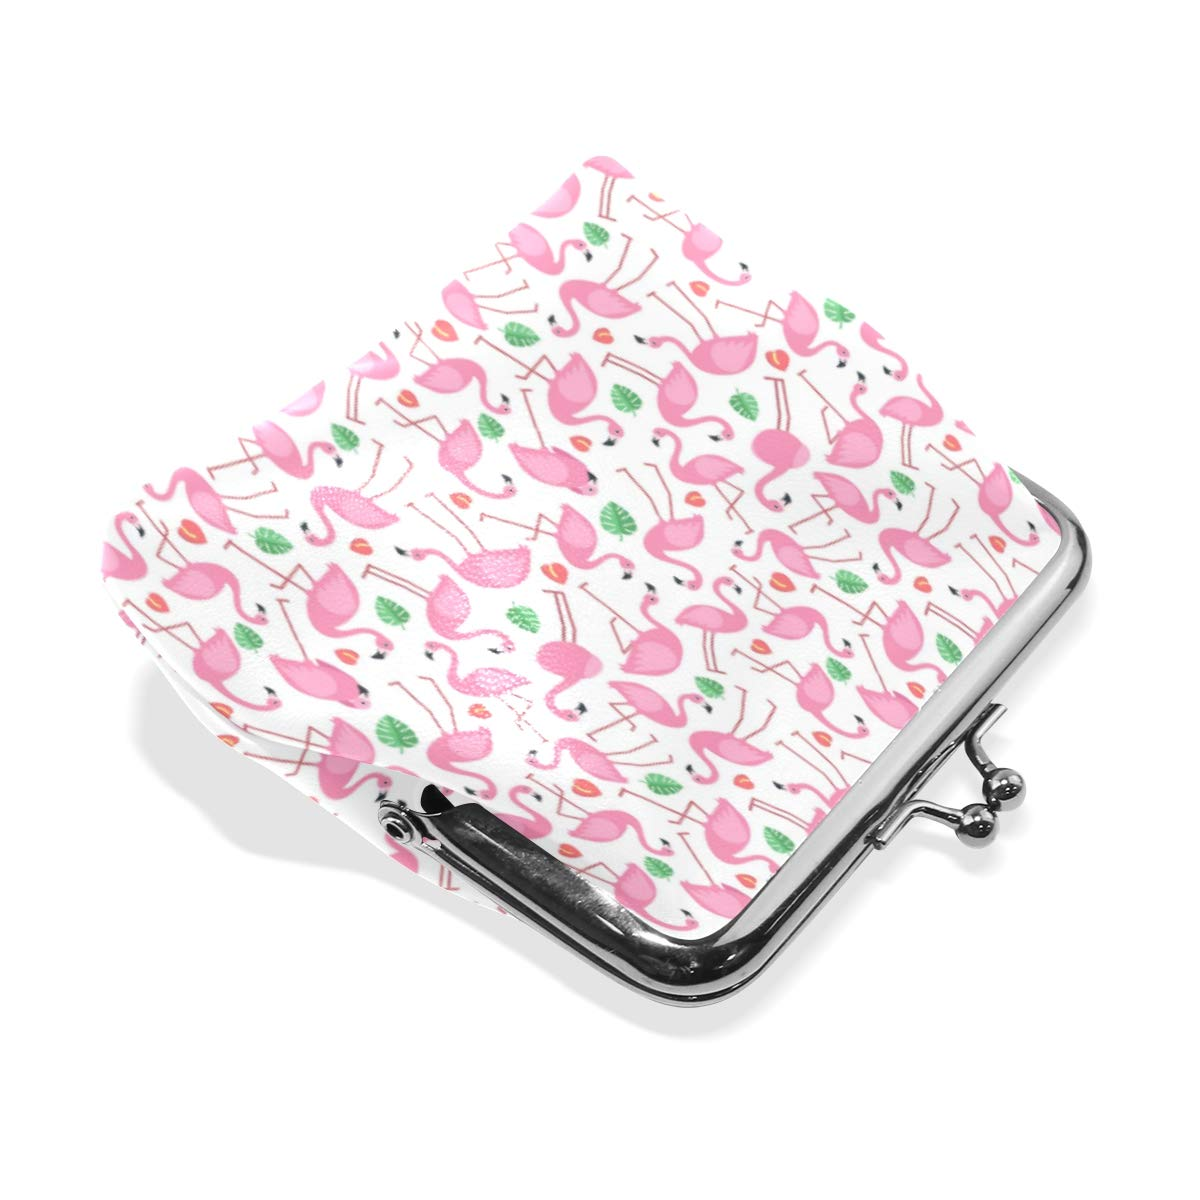 Exquisite Buckle Coin Purses Pattern With Pictures Of Pink Flamingo Mini Wallet Key Card Holder Purse for Women